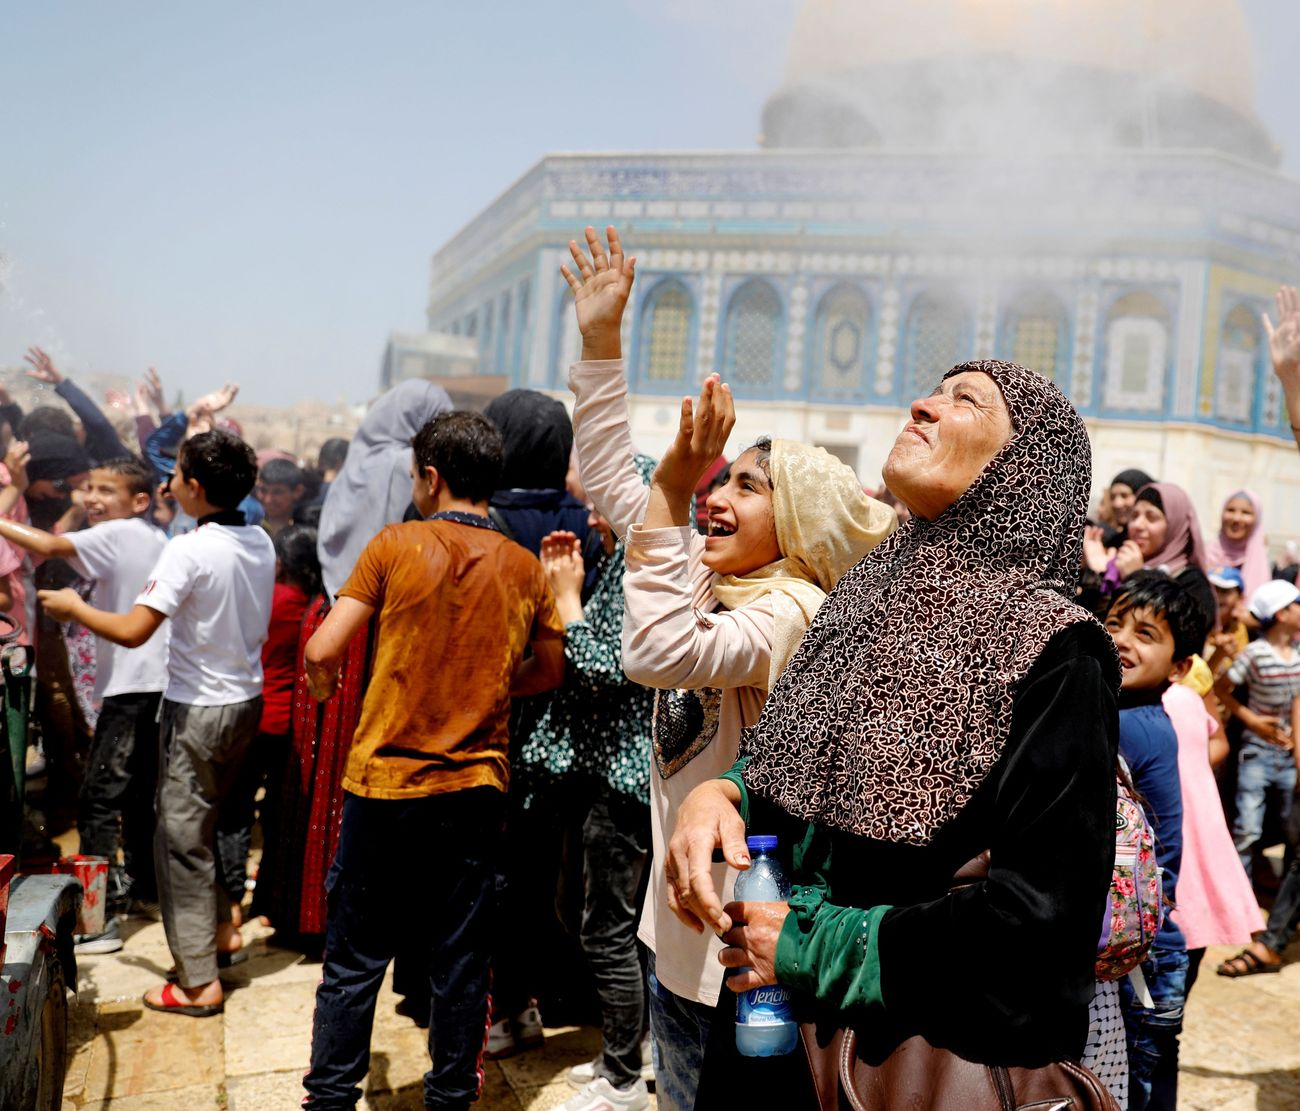 A Plea To My Israeli Brothers And Sisters, From A Palestinian Who Can't Vote